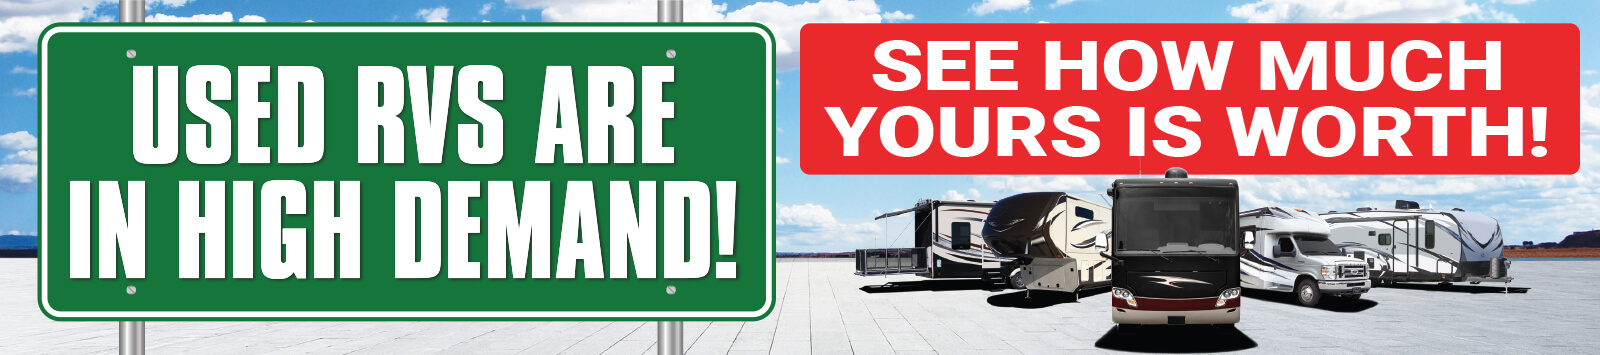 We Want Your RV Banner